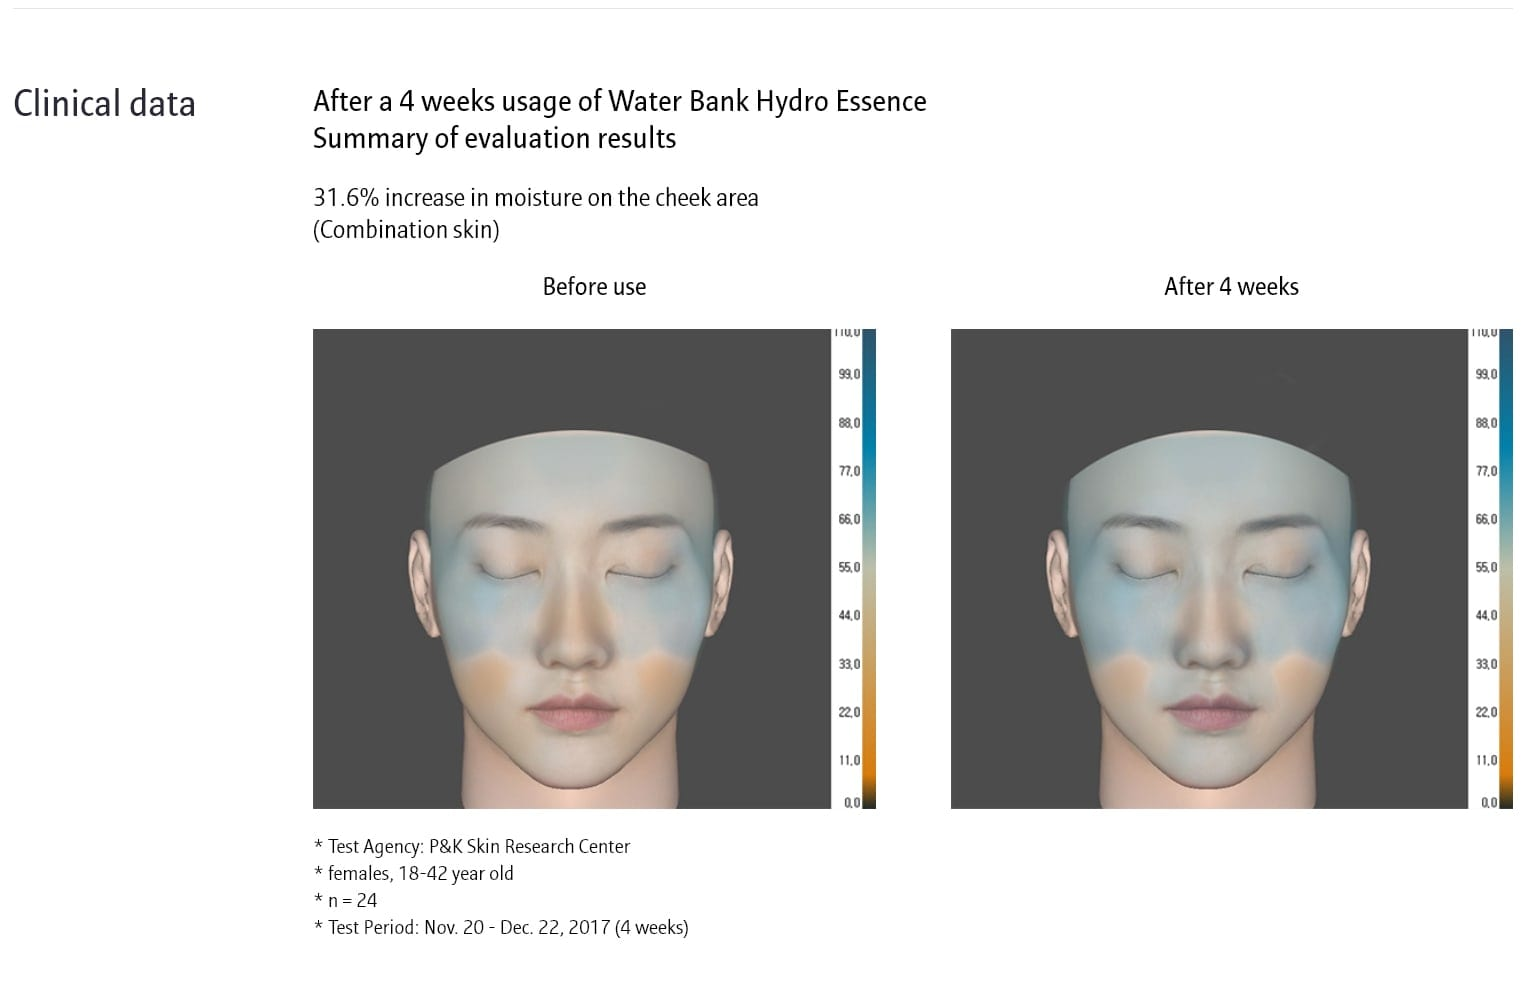 Laneige Water Bank Hydro Essence - data